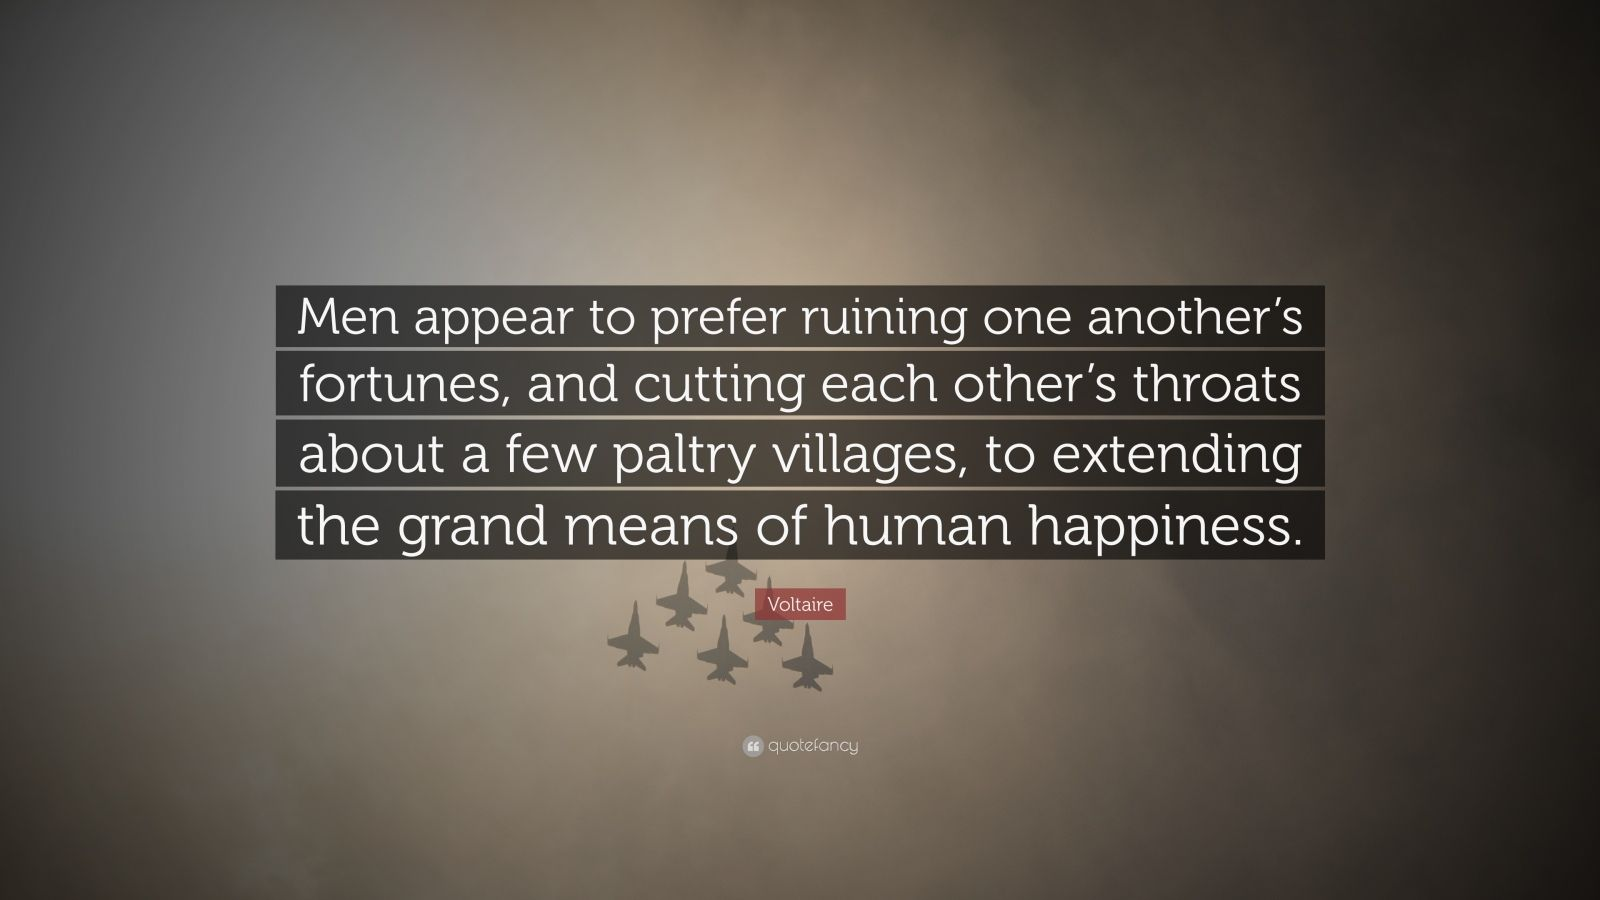 """Voltaire Quote: """"Men appear to prefer ruining one another's fortunes, and cutting each other's throats about a few paltry villages, to extending the grand means of human happiness."""""""